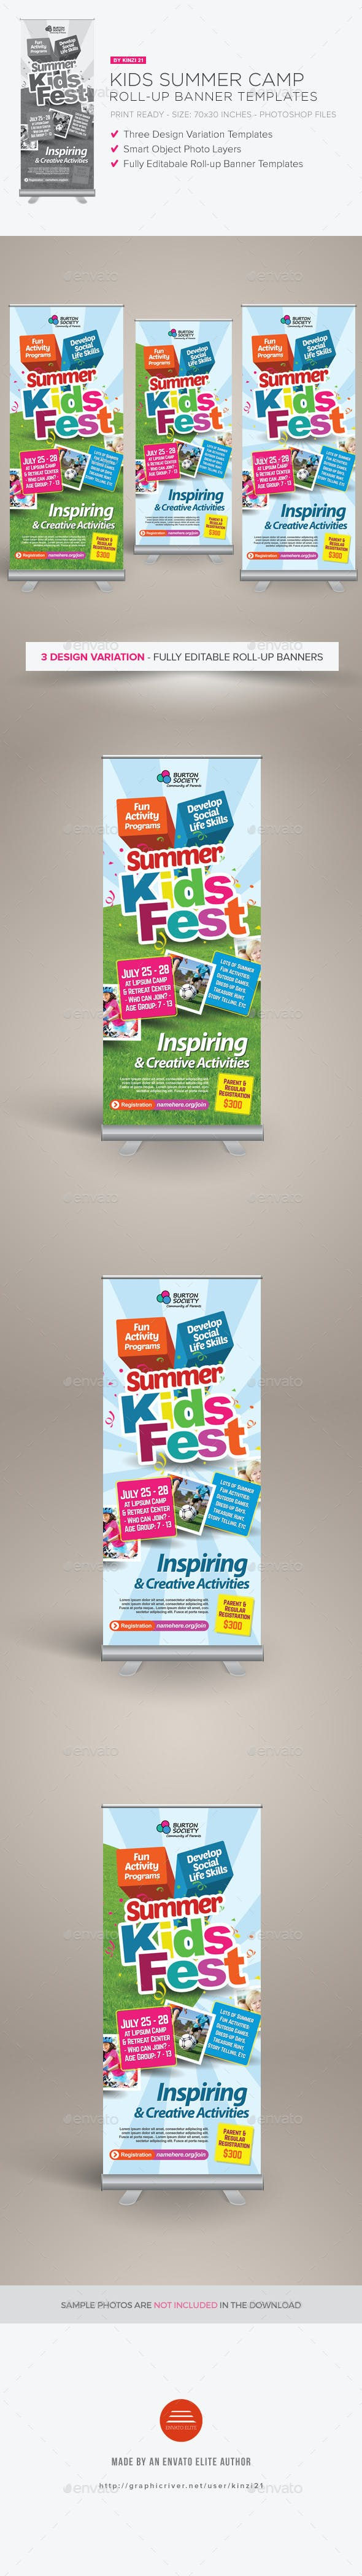 kids summer camp roll up banners by kinzi21 graphicriver